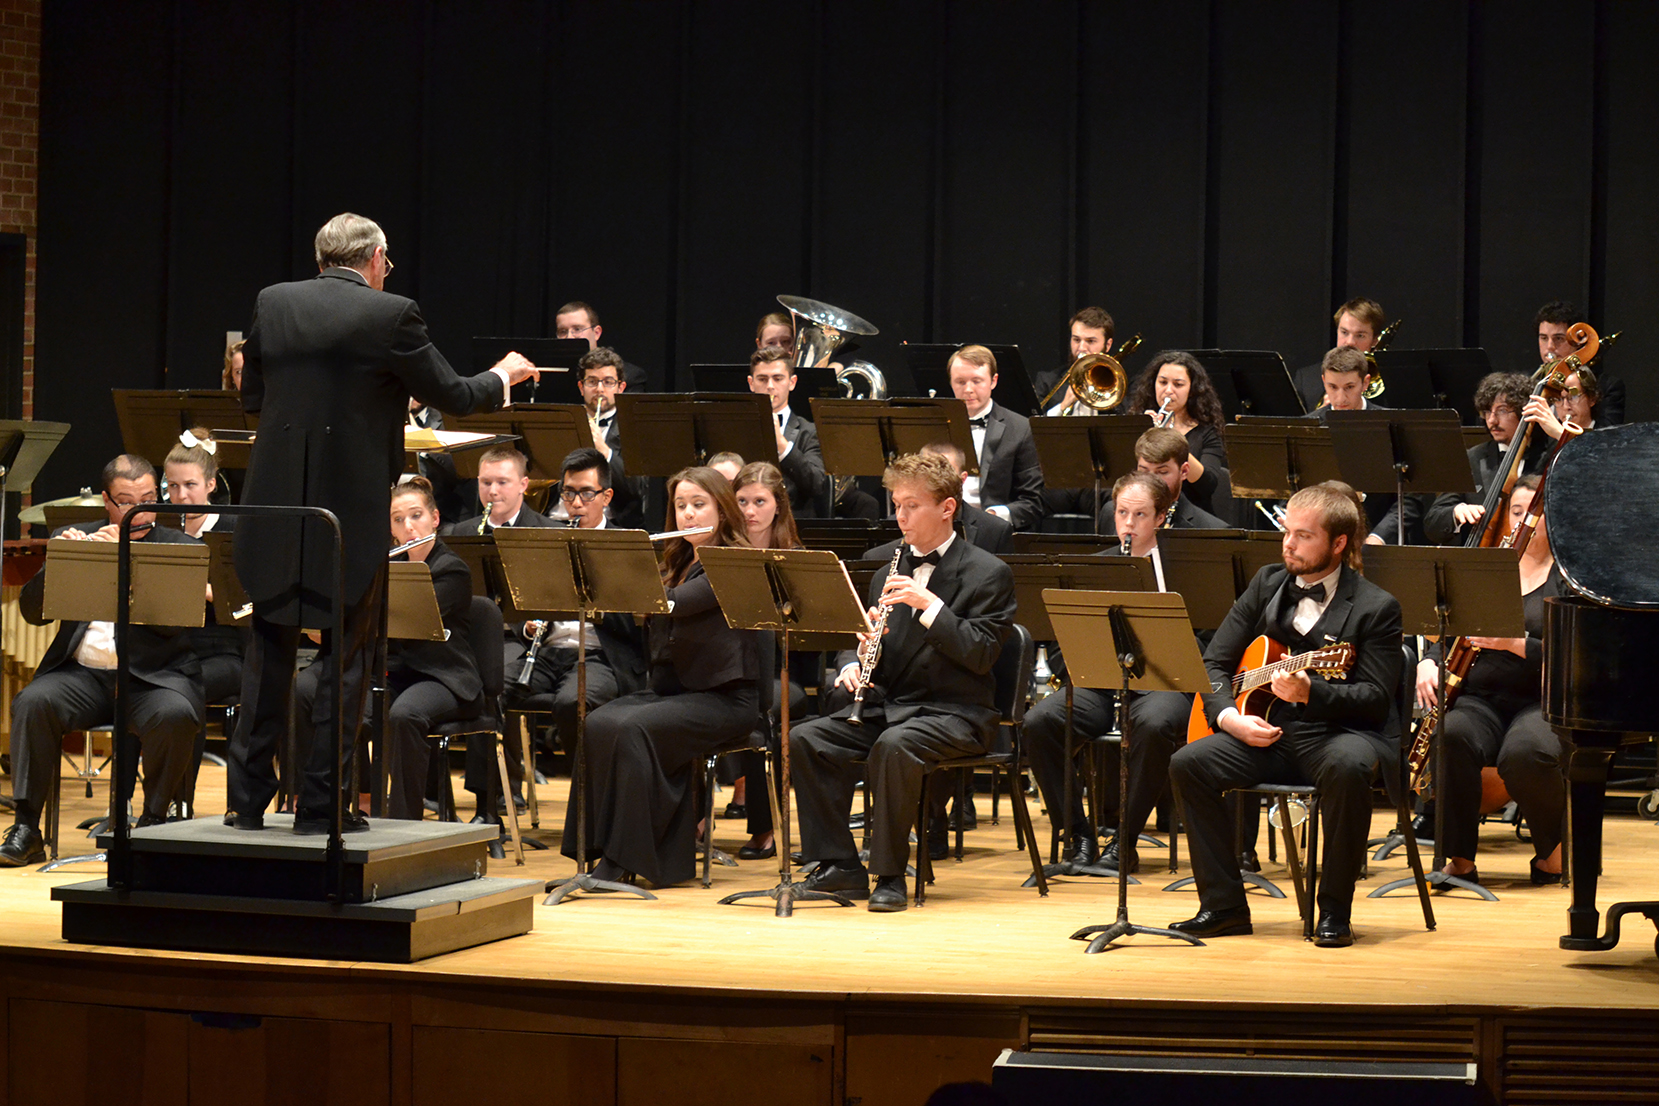 """The University of Connecticut Wind Ensemble wowed the audience with a breathtaking concert entitled """"Bird Song"""" at the J. Louis von der Mehden Recital Hall on Thursday, Dec. 3, 2015. (Amar Batra/The Daily Campus)"""